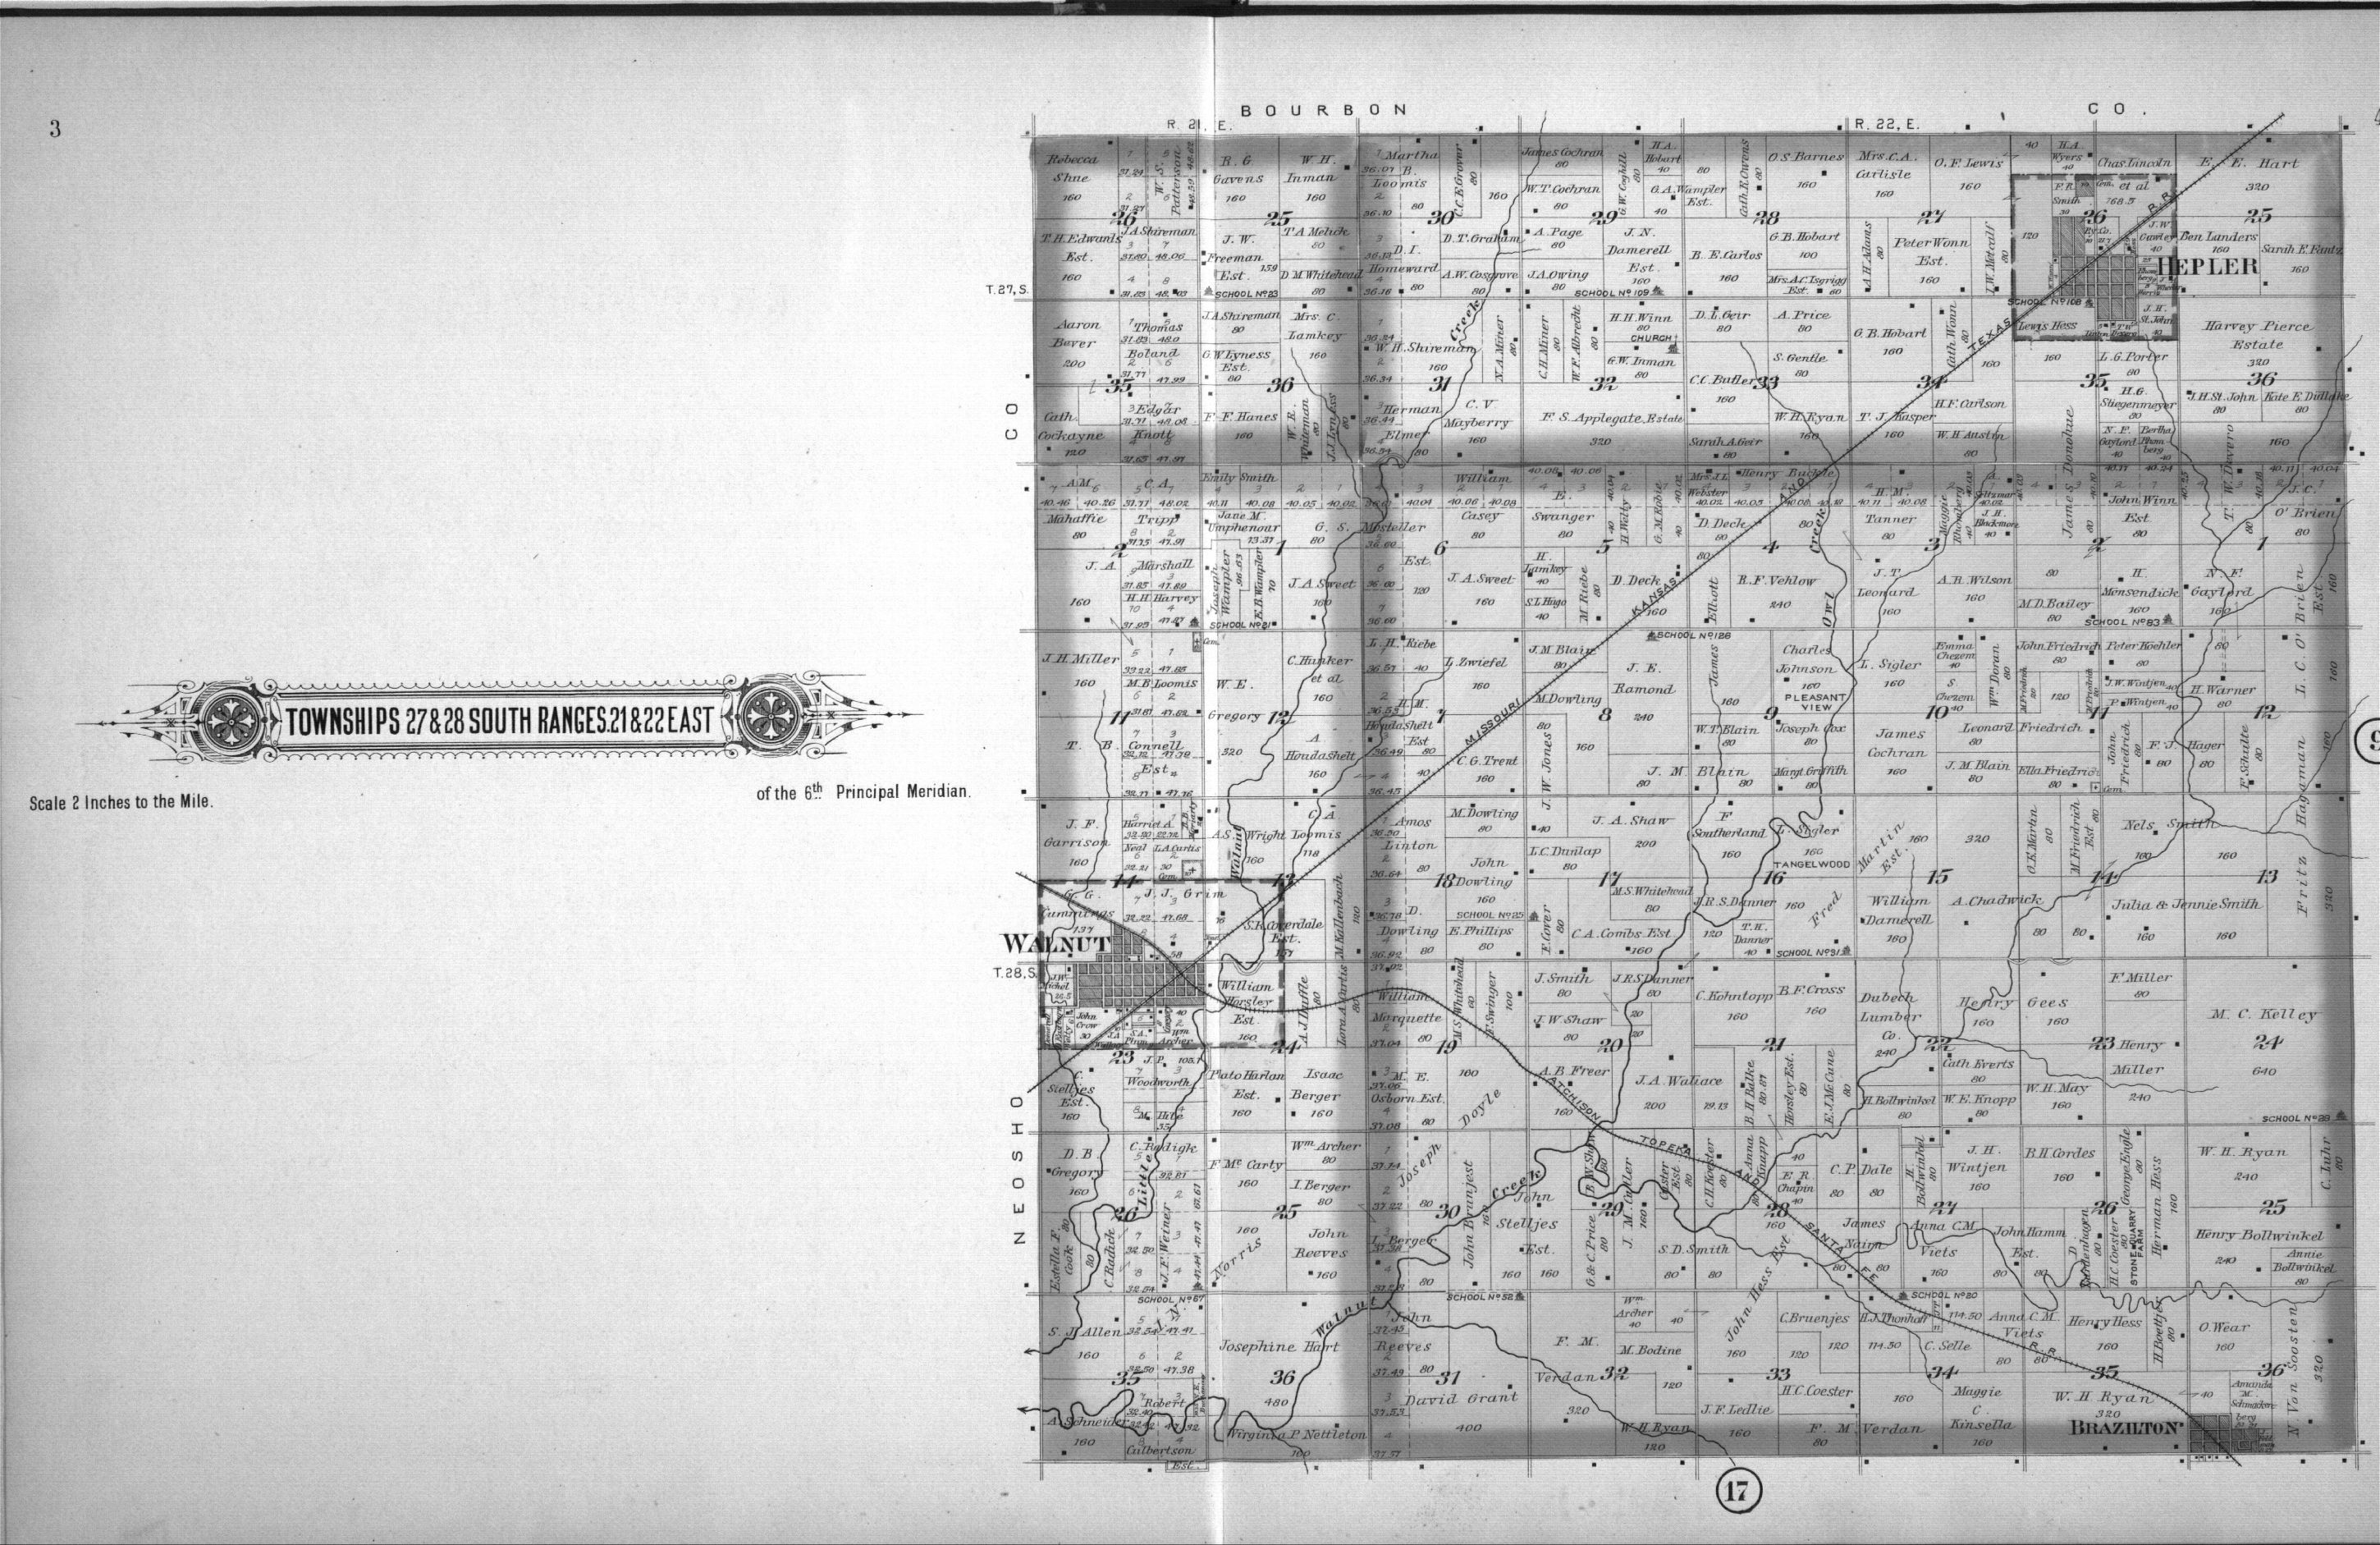 Plat book, Crawford County, Kansas - 4